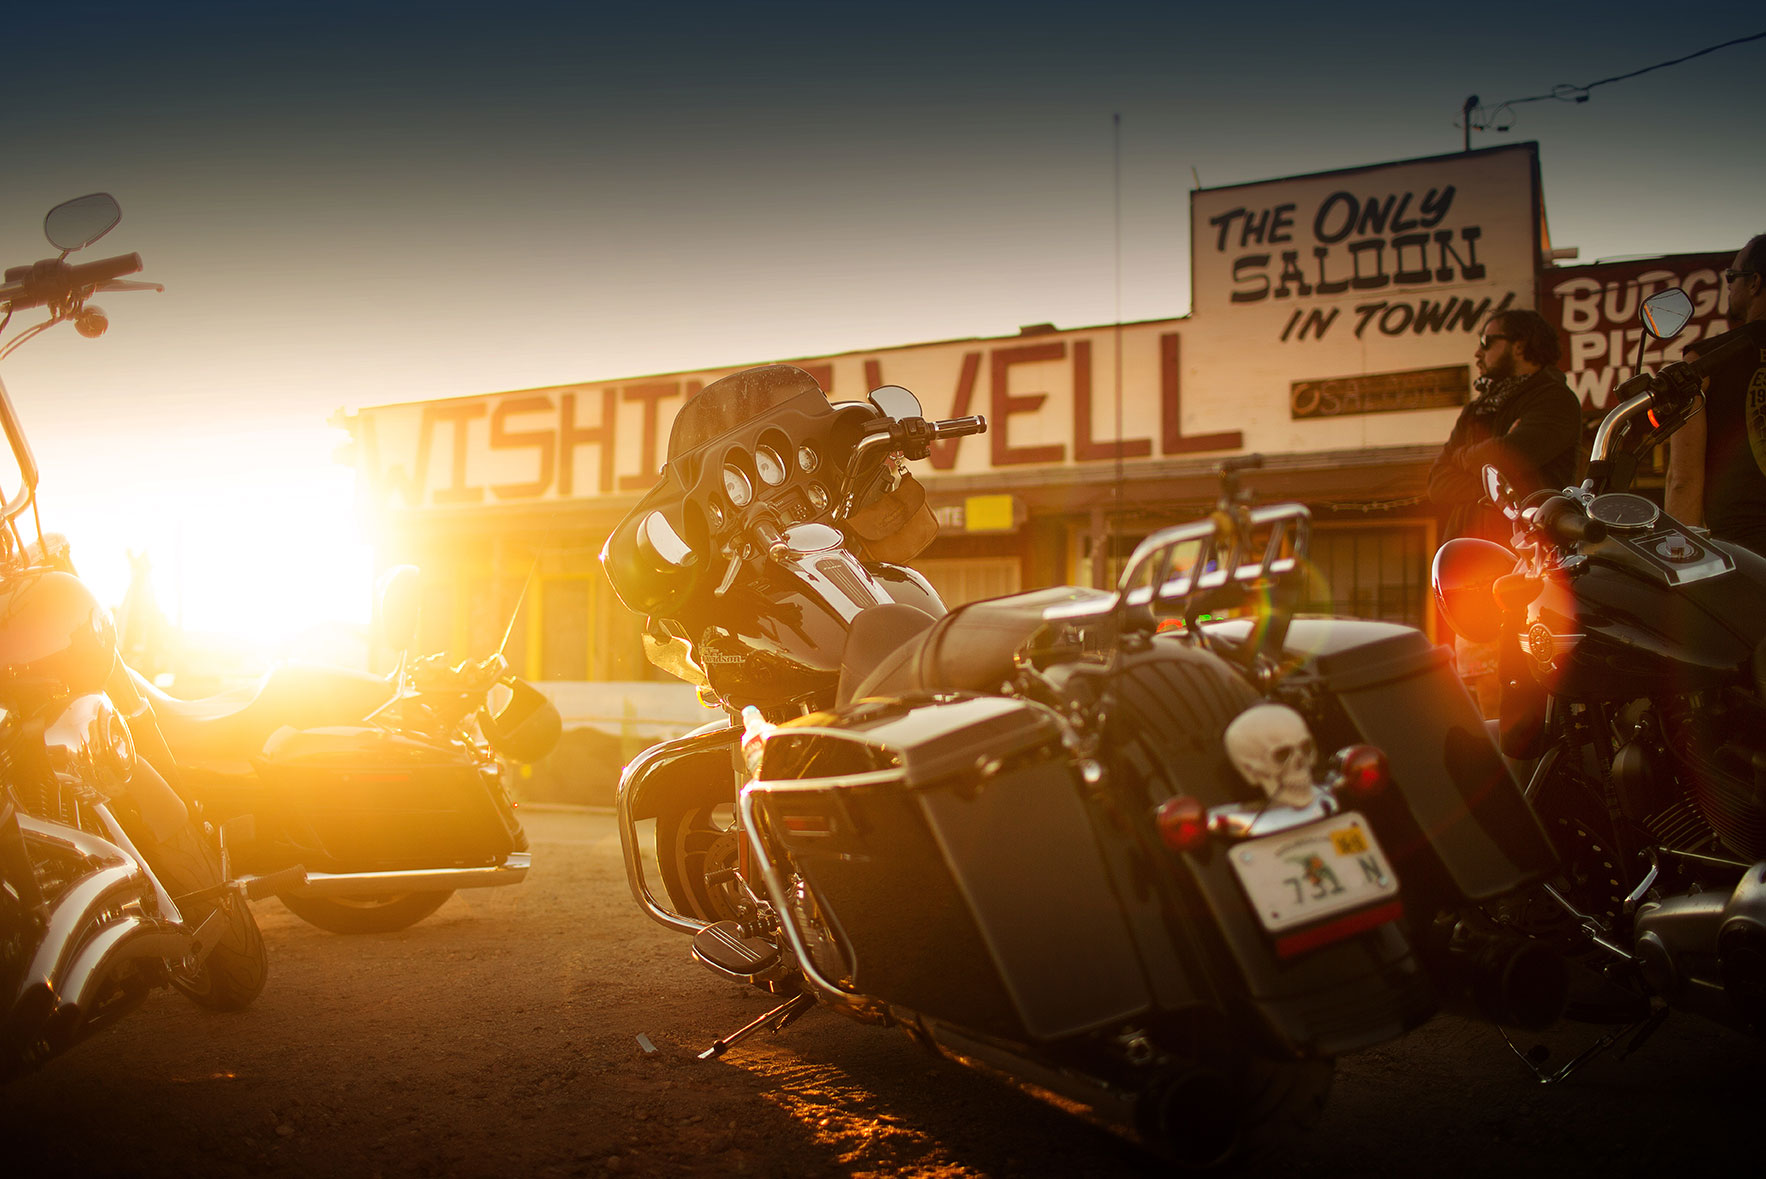 AMERICAN WEST Motorcycle tours